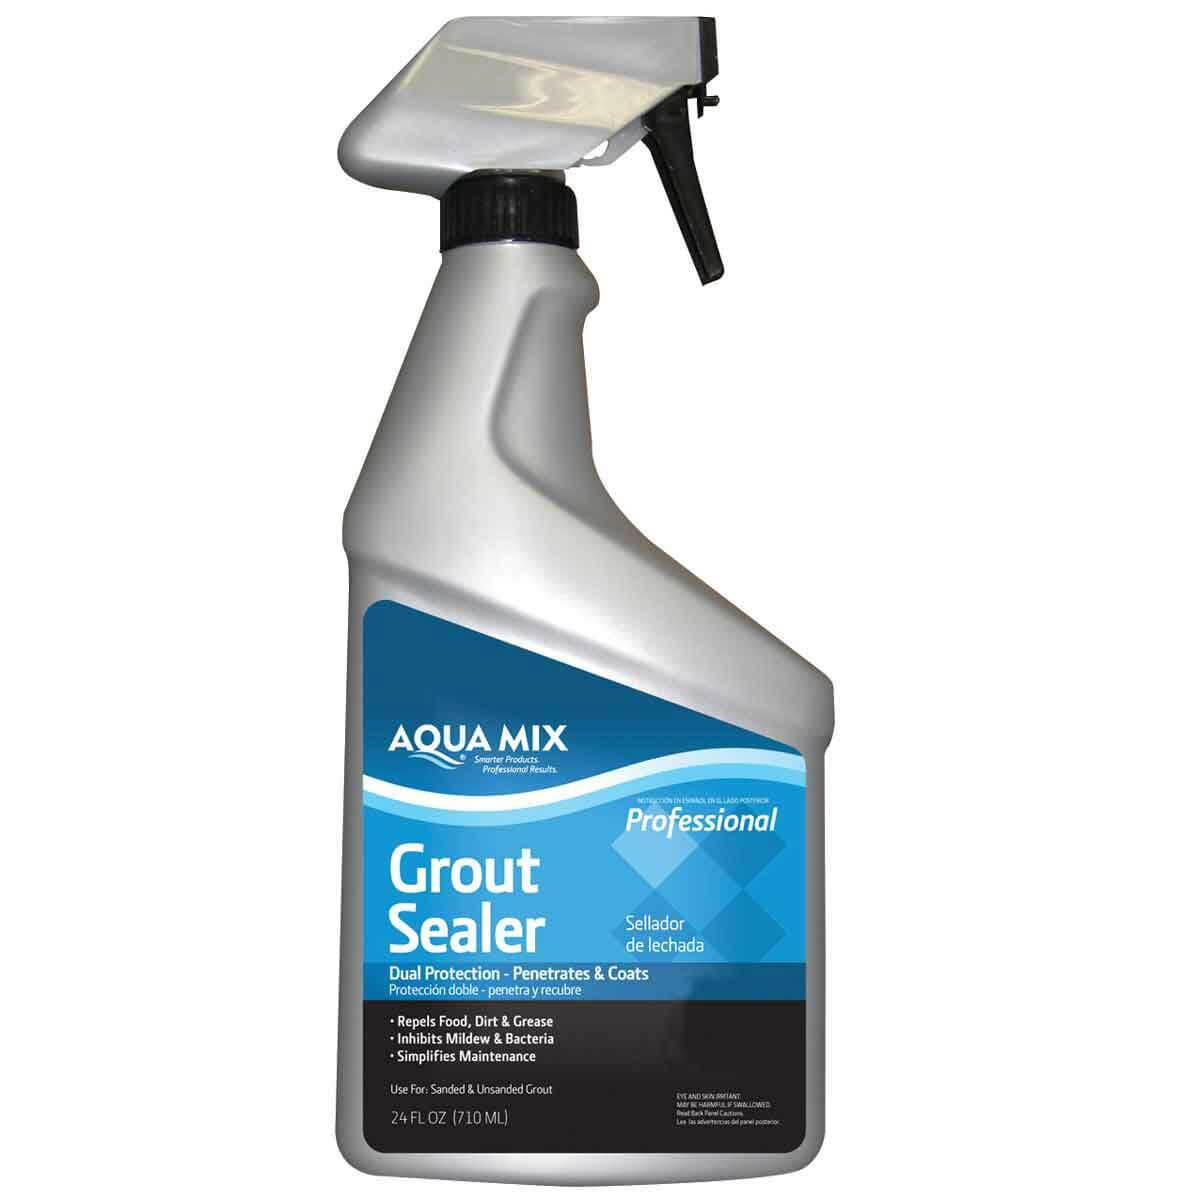 24oz Spray Bottle Aqua Mix Grout Sealer 020720-4